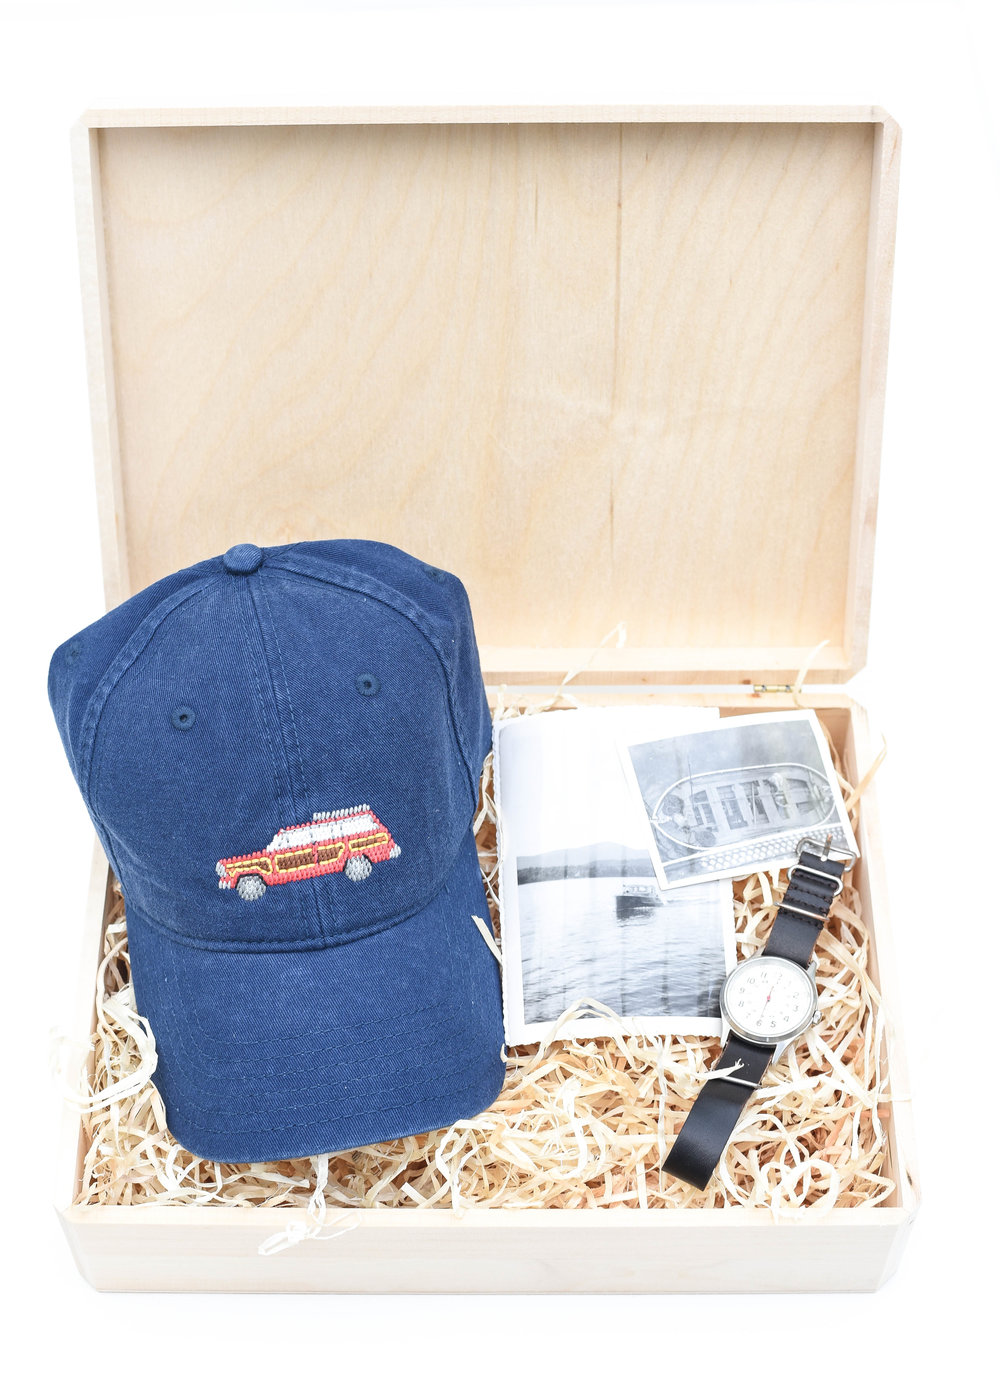 Gift Set For Him - For the Dad, the traveler, brother, uncle, friend, this simple set is perfect for the men on your list!  A baseball hat ready to be worn in, a classic watch, and printed pictures of favorite people and memories are sure to make an impression on the guys on your list.  For purchase info, click links below:L:R  | Needlepoint Baseball Hat  |  Wood Block With 12 Prints (not pictured, but a favorite of ours for just $20!) | Timex Weekender with Two Interchangeable Bands (item pictured older version)Our go to gift wrap this holiday, shown here:Unfinished Walnut Box (2 pack) | Aspen Wood Excelsior (BULK)Only needing to wrap one present?Individual Unfinished Walnut Box | Aspen Wood Excelsior (4 oz bag)